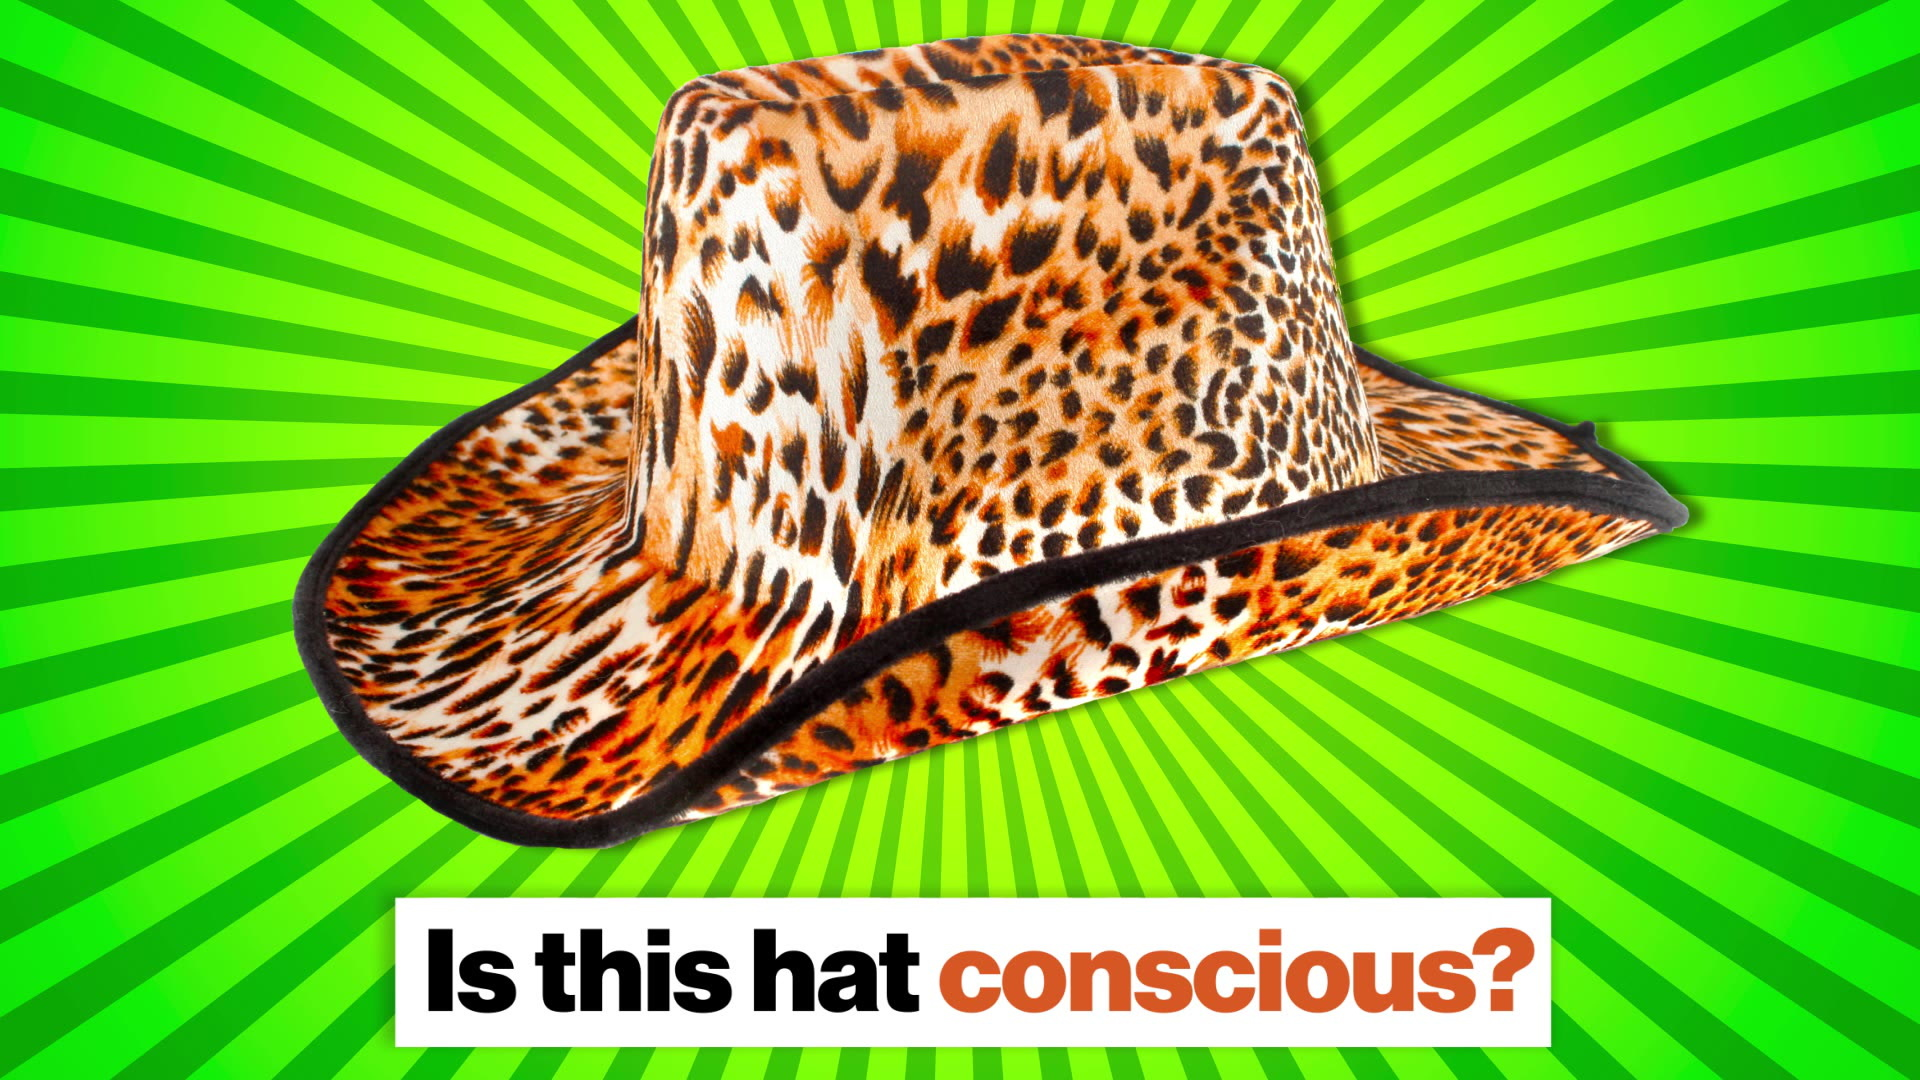 Consciousness, panpsychism, and AGI: What is it like to be a hat?